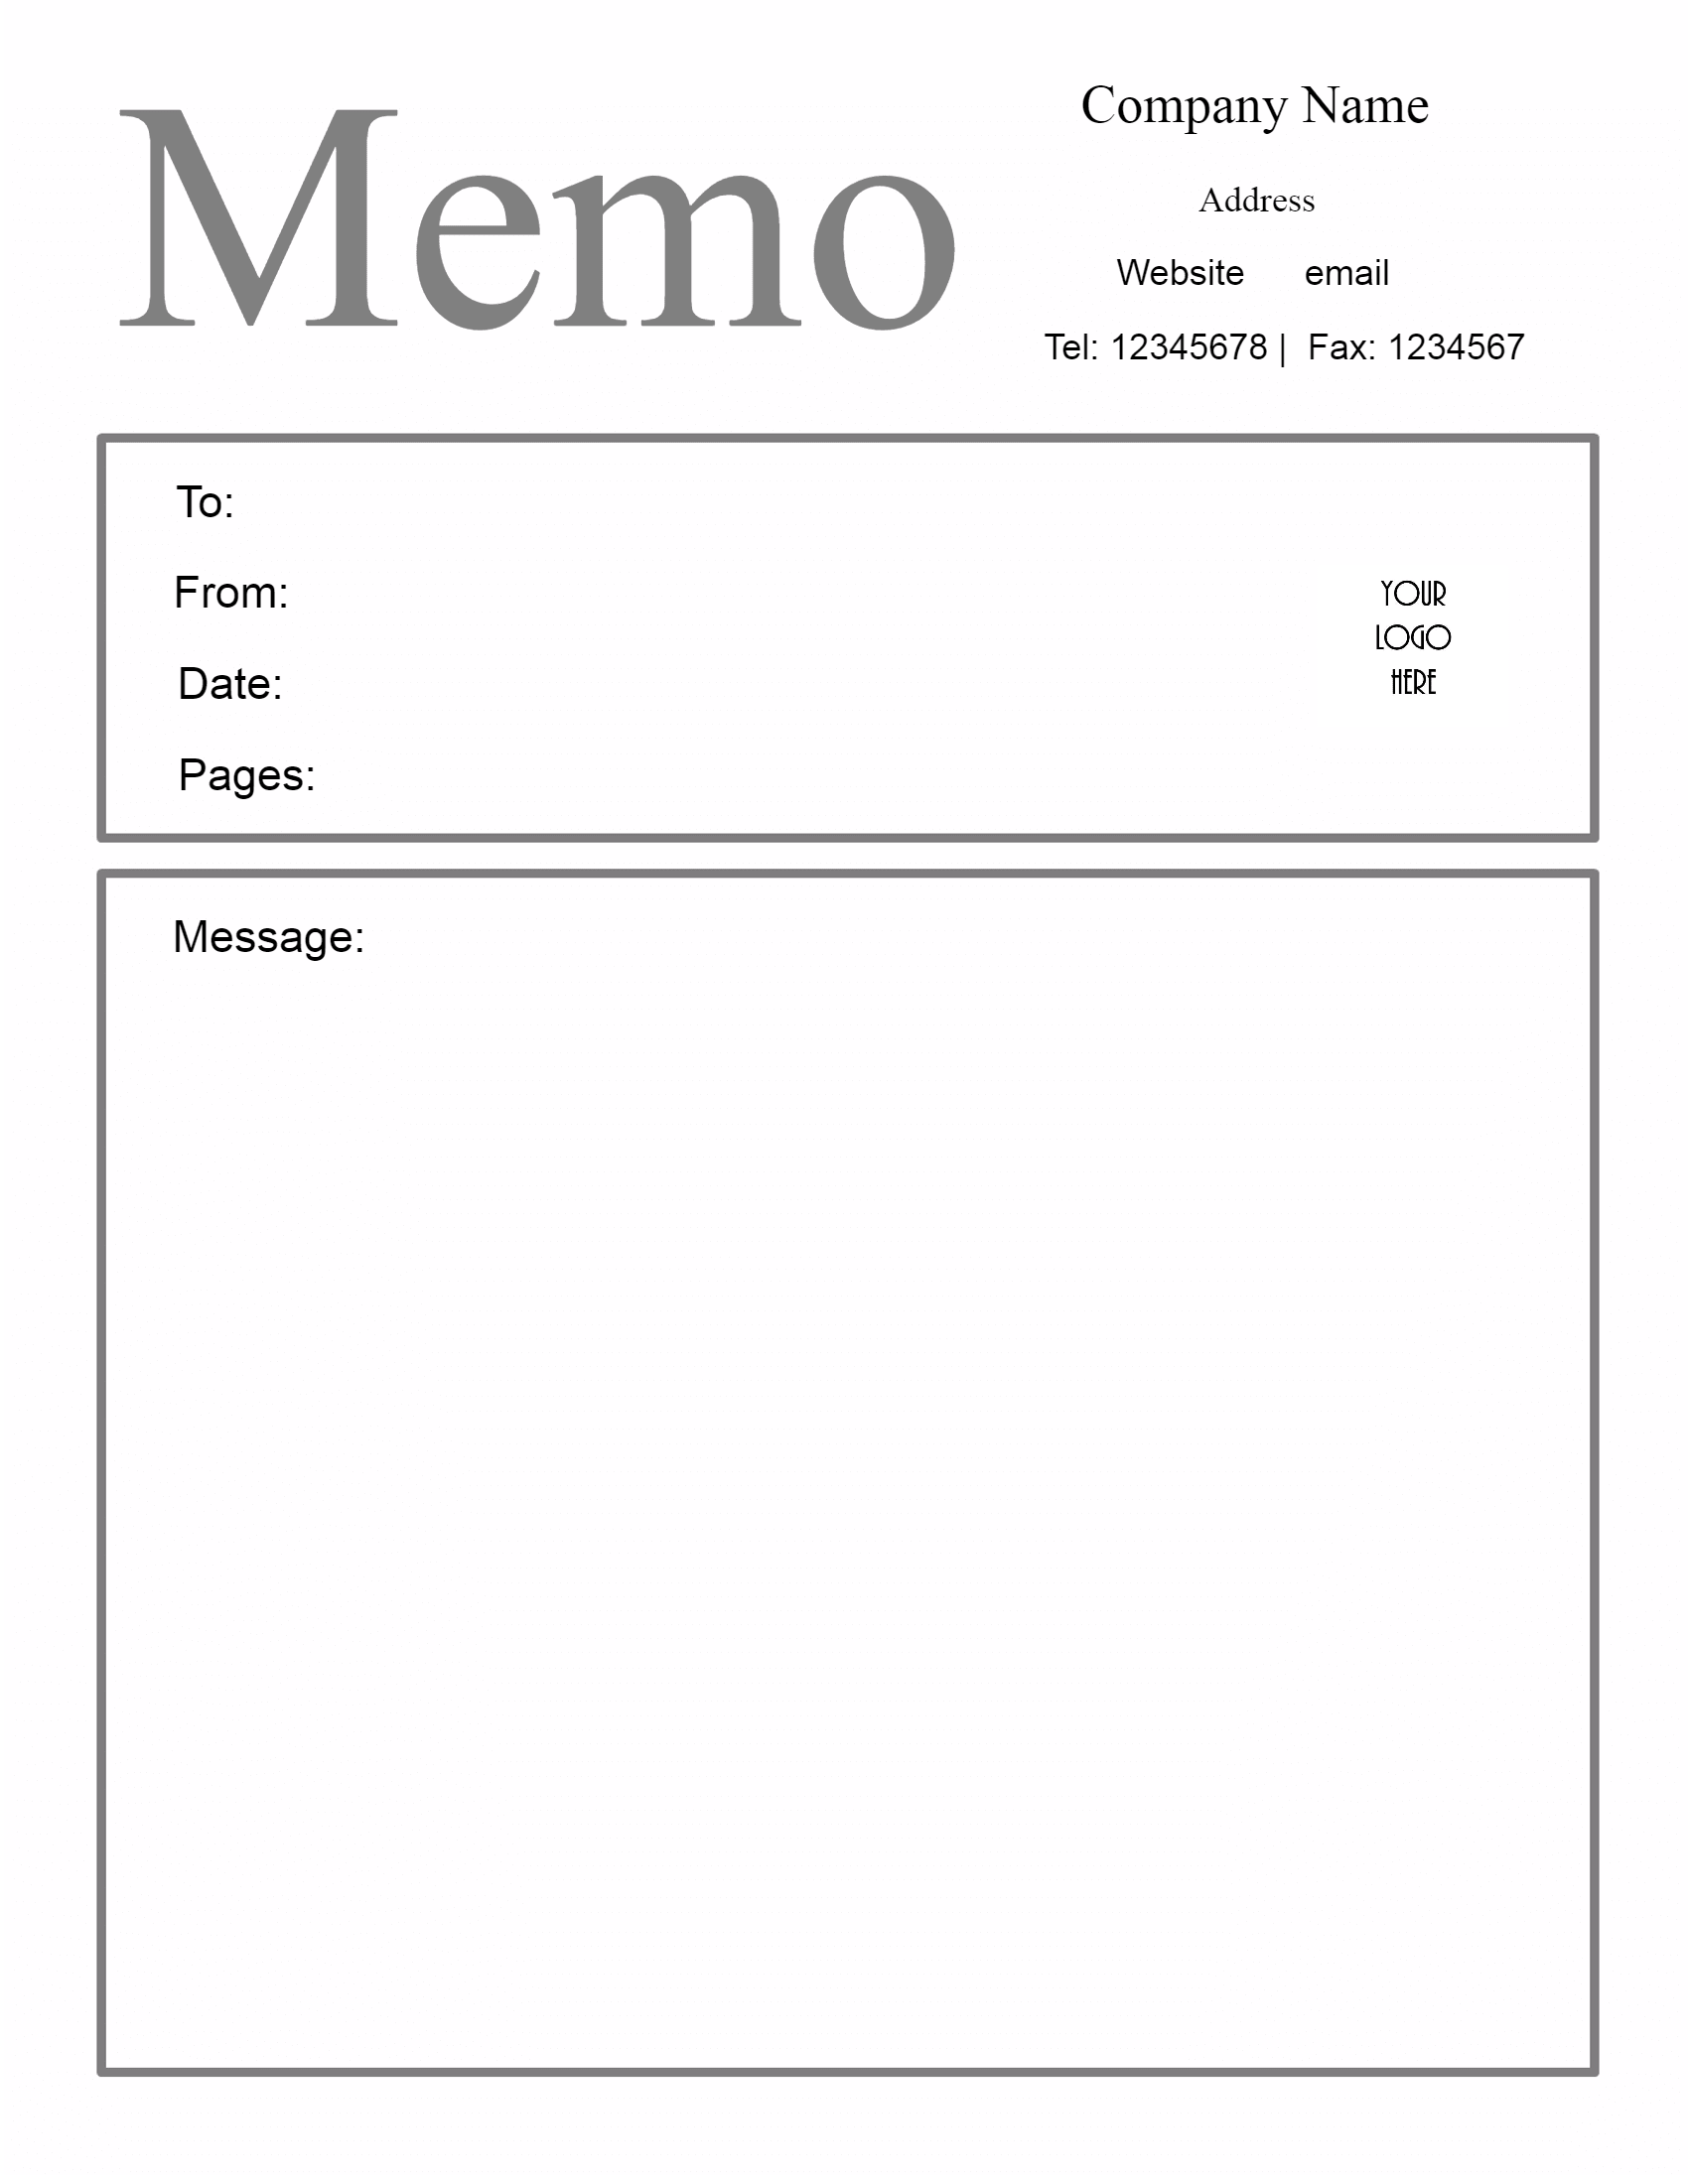 Free Microsoft Word Memo Template Memo Template 1 Memo Template Company  Letterhead Samples Free Download Company Letterhead Samples Free Download  Memo Template Free Download